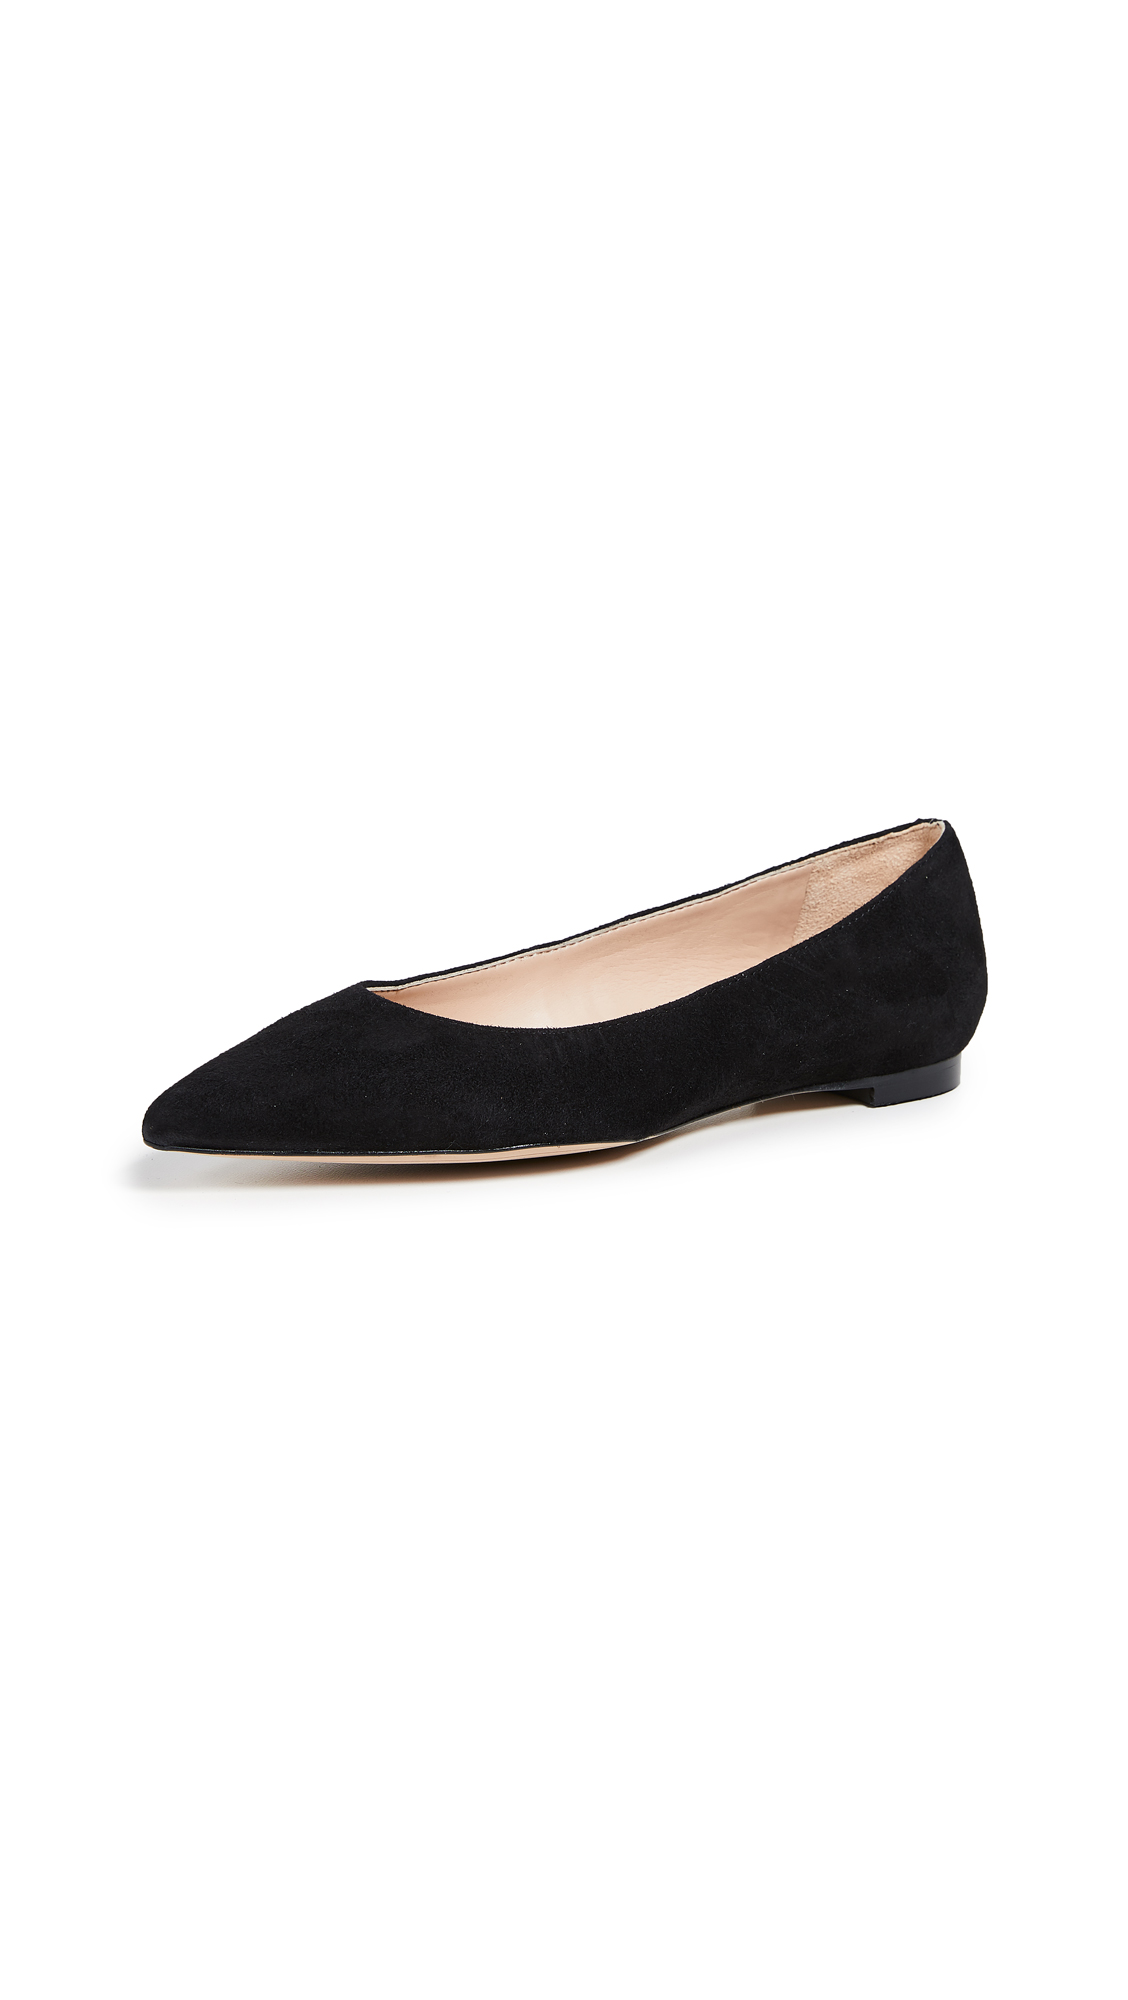 Sam Edelman Sally Flats - Black